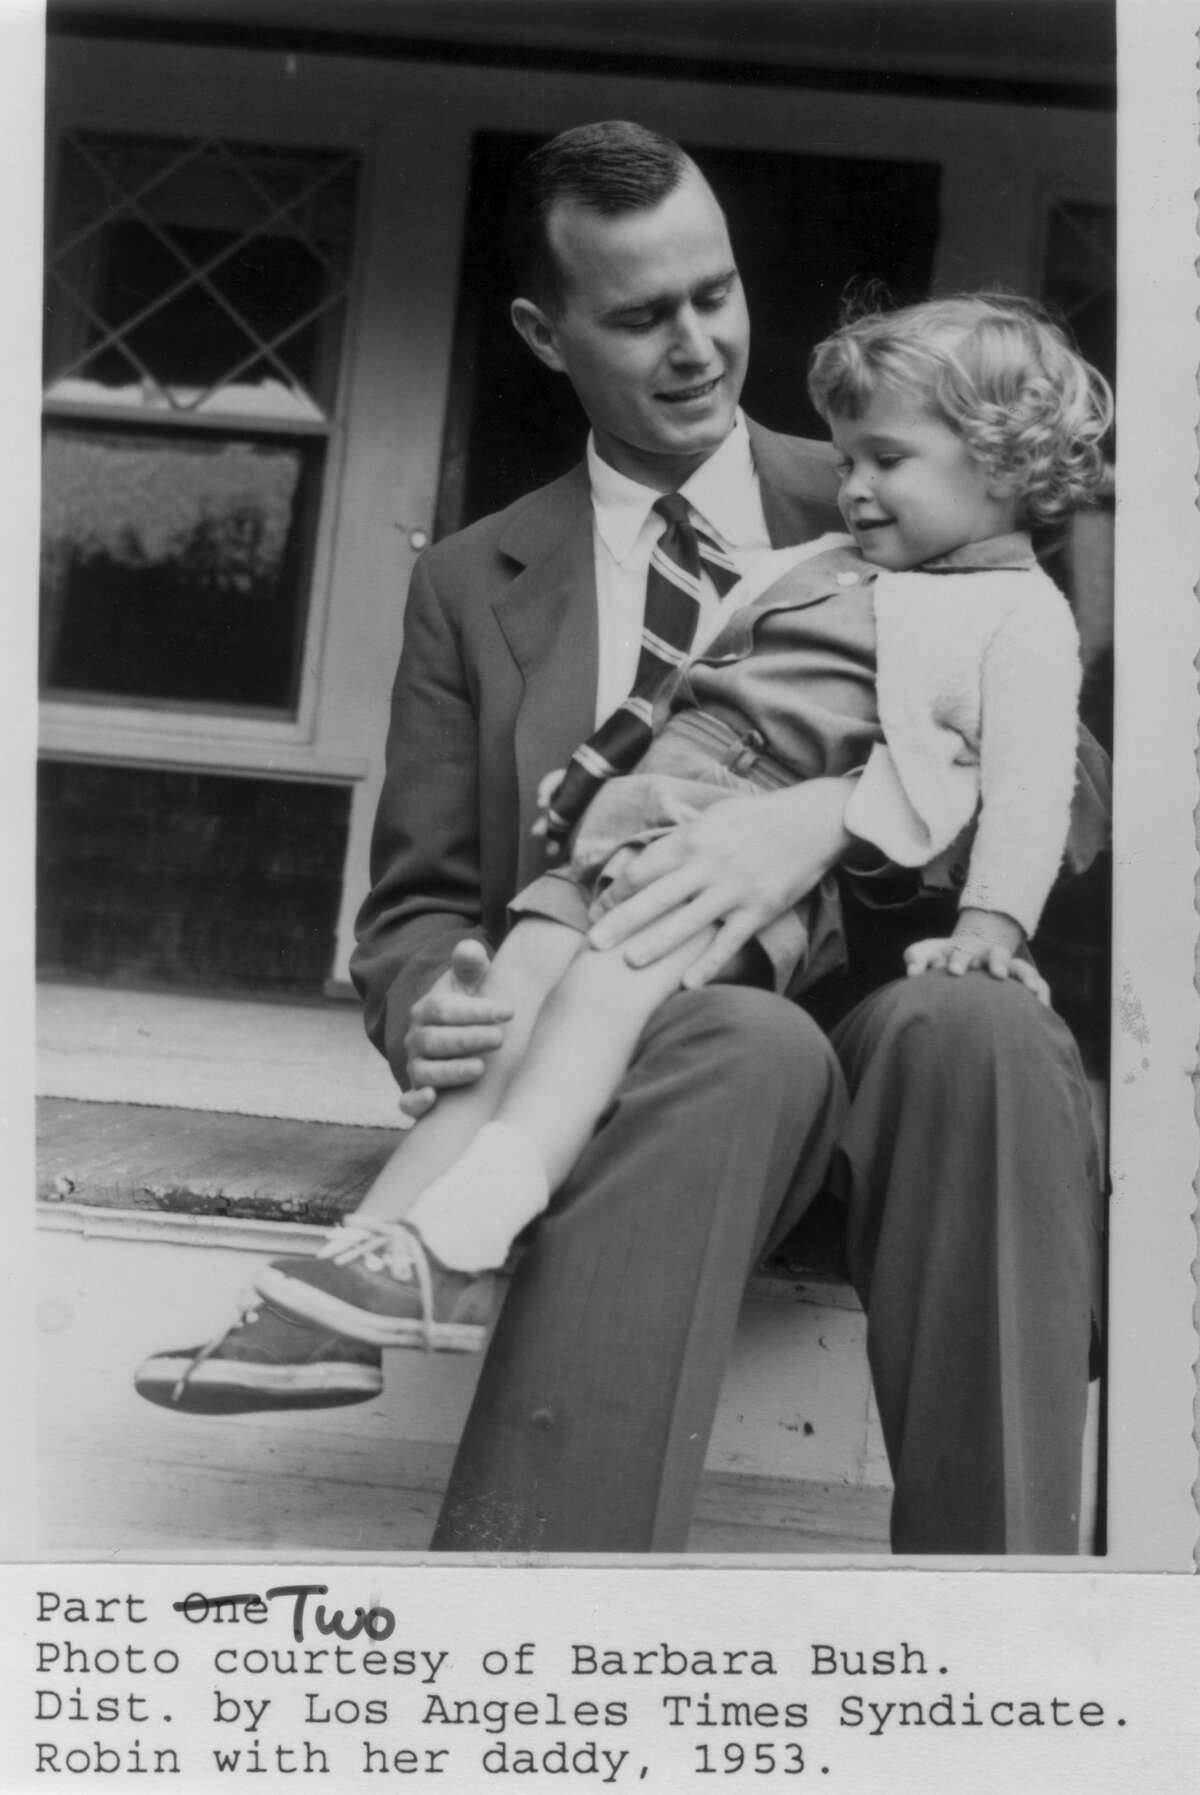 Robin Bush with her daddy in 1953. She died of leukemia the same year.